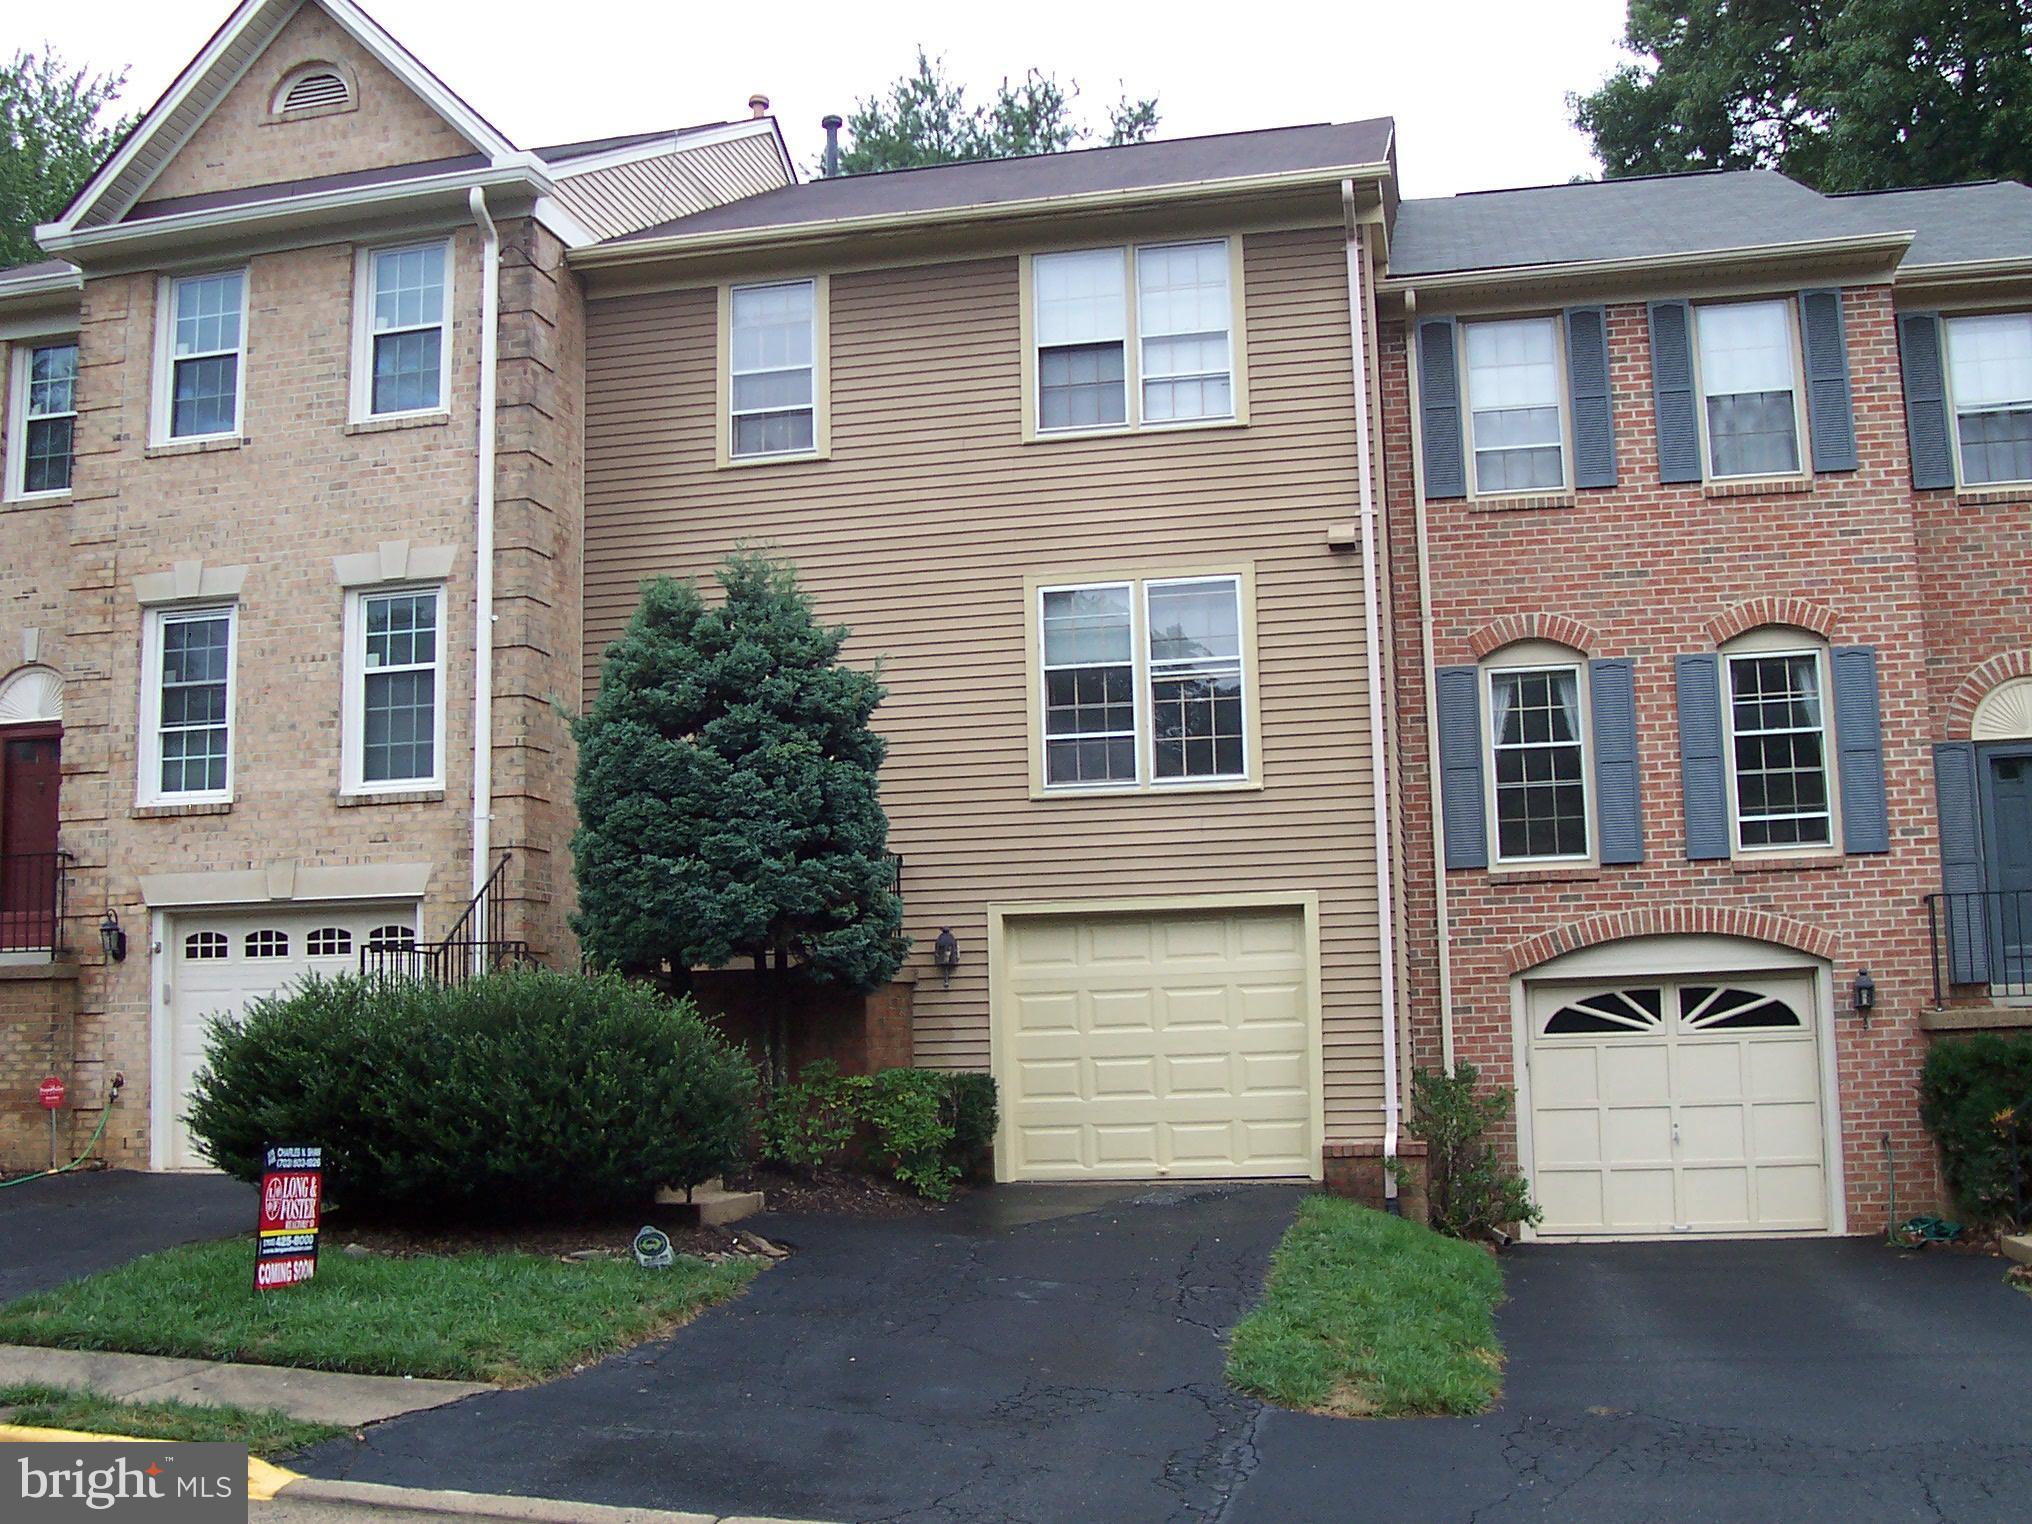 OPEN SUNDAY 1-4 Beautiful Garage townhouse in Daventry. 3 Bedrooms, 2 Full & 2 Half Baths.Large rec room on lower level  with gas fireplace and walk out to patio. Hardwood floors main level. New carpet upper level. New Garage door W/ remotes.Close to Metro, 95, 395, Community pool. West Springfield H.S. District